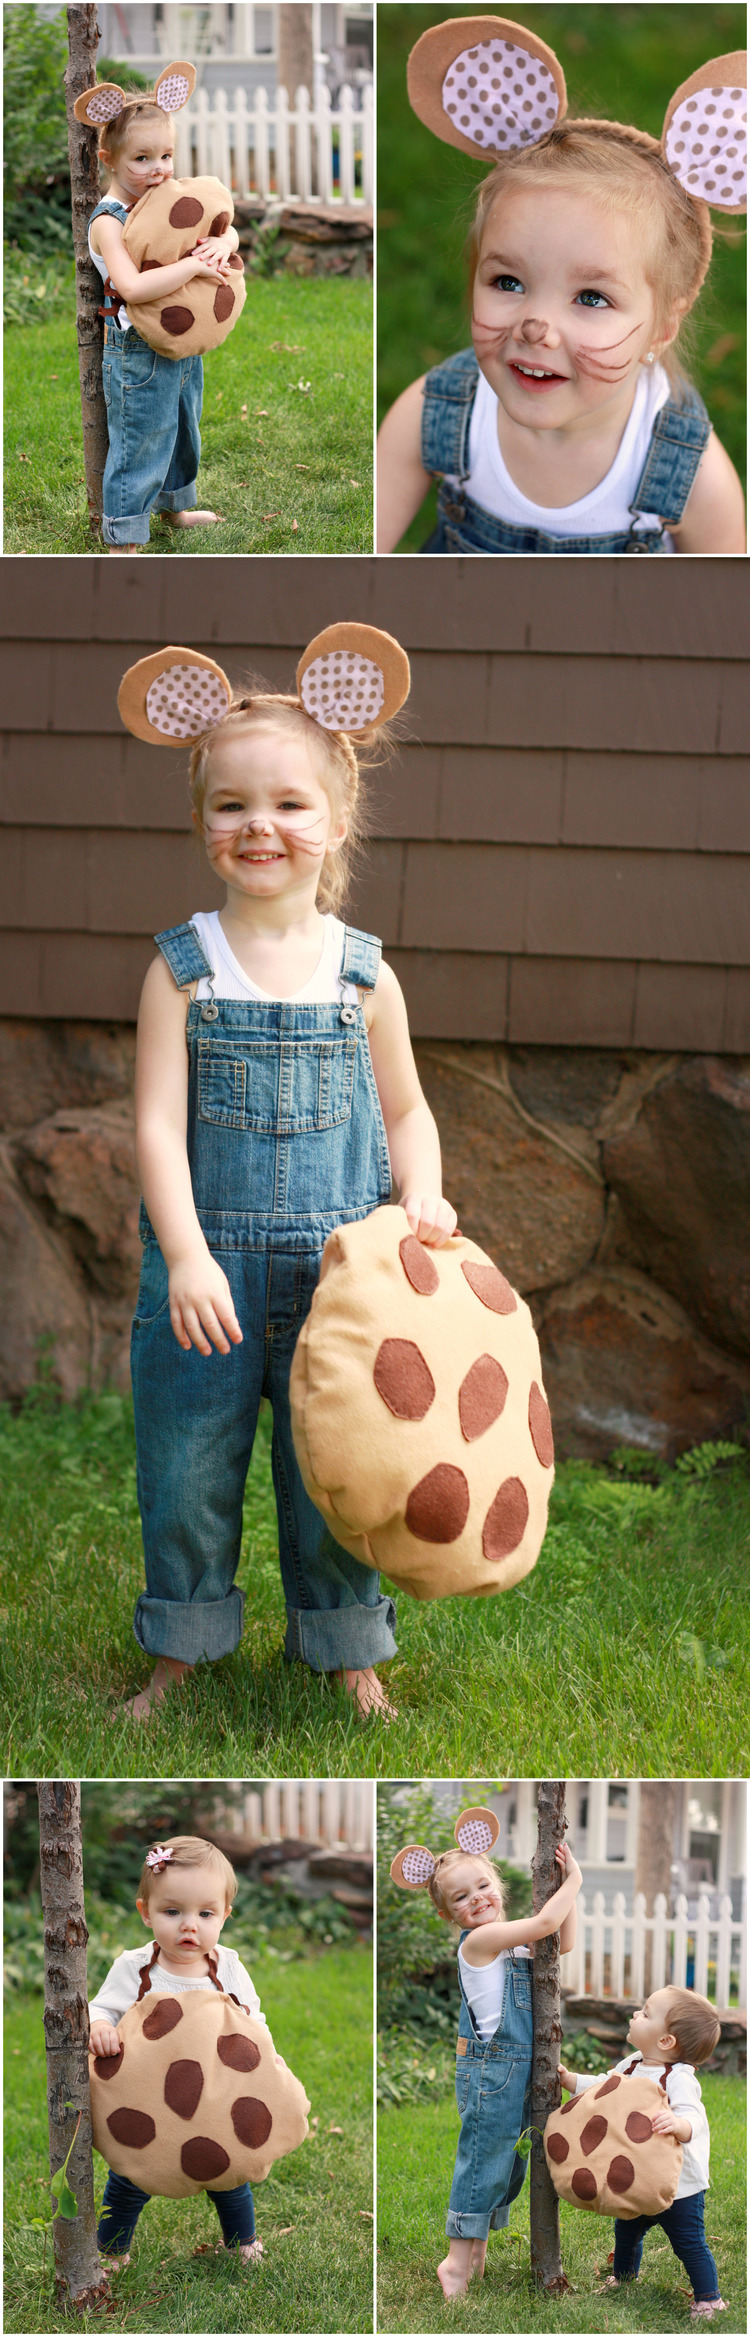 50 DIY Halloween Costumes for the Whole Family | MomSpark - A Trendy Blog for Moms - Mom Blogger